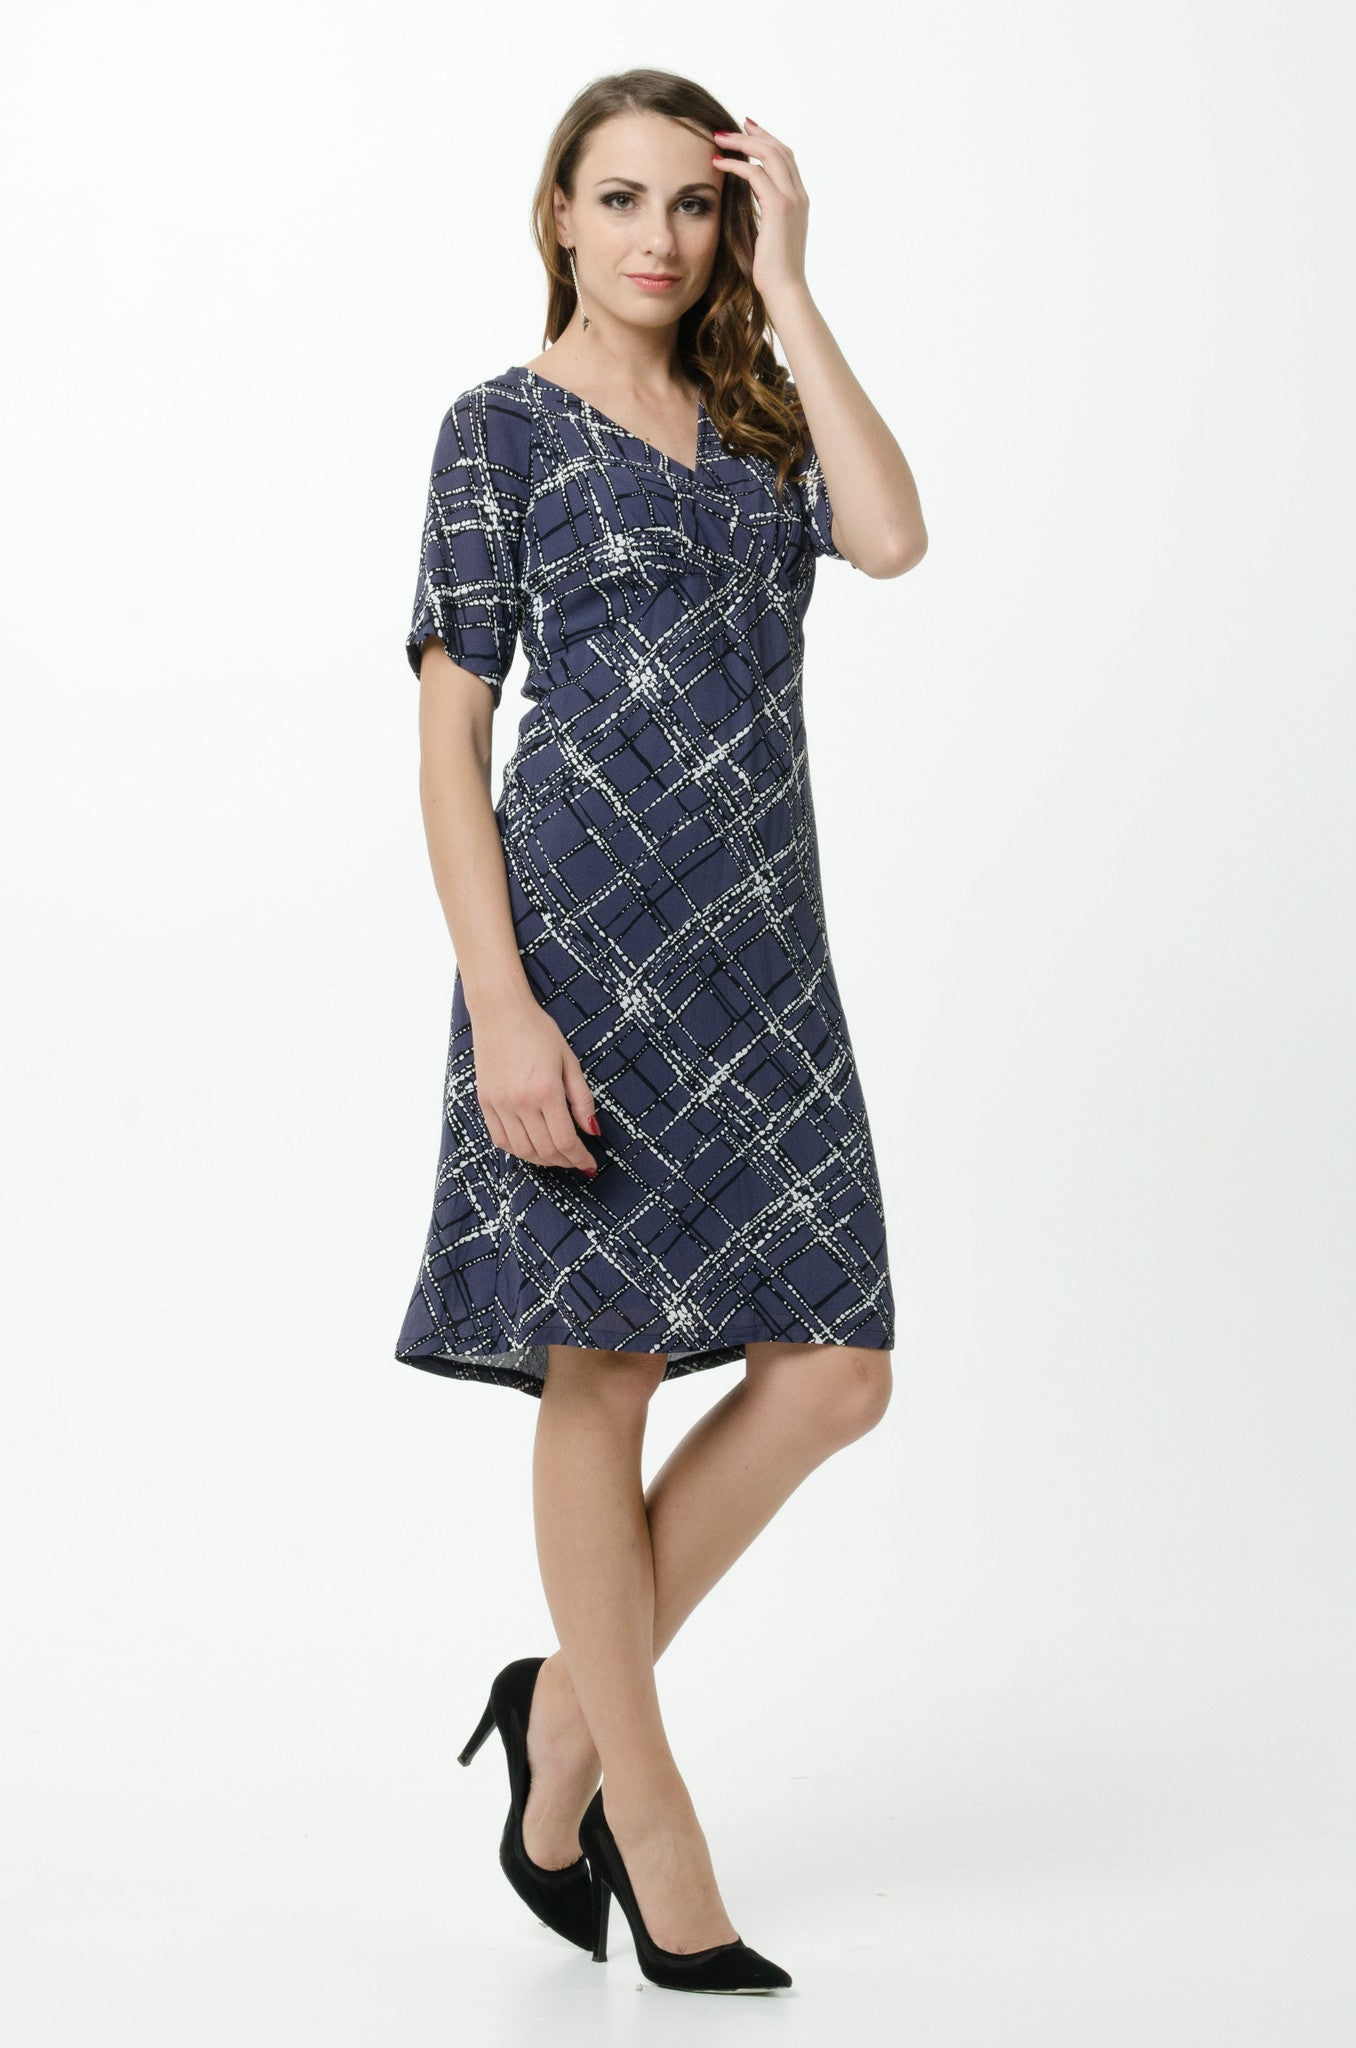 Vesta Ophelia Dress - Apollo